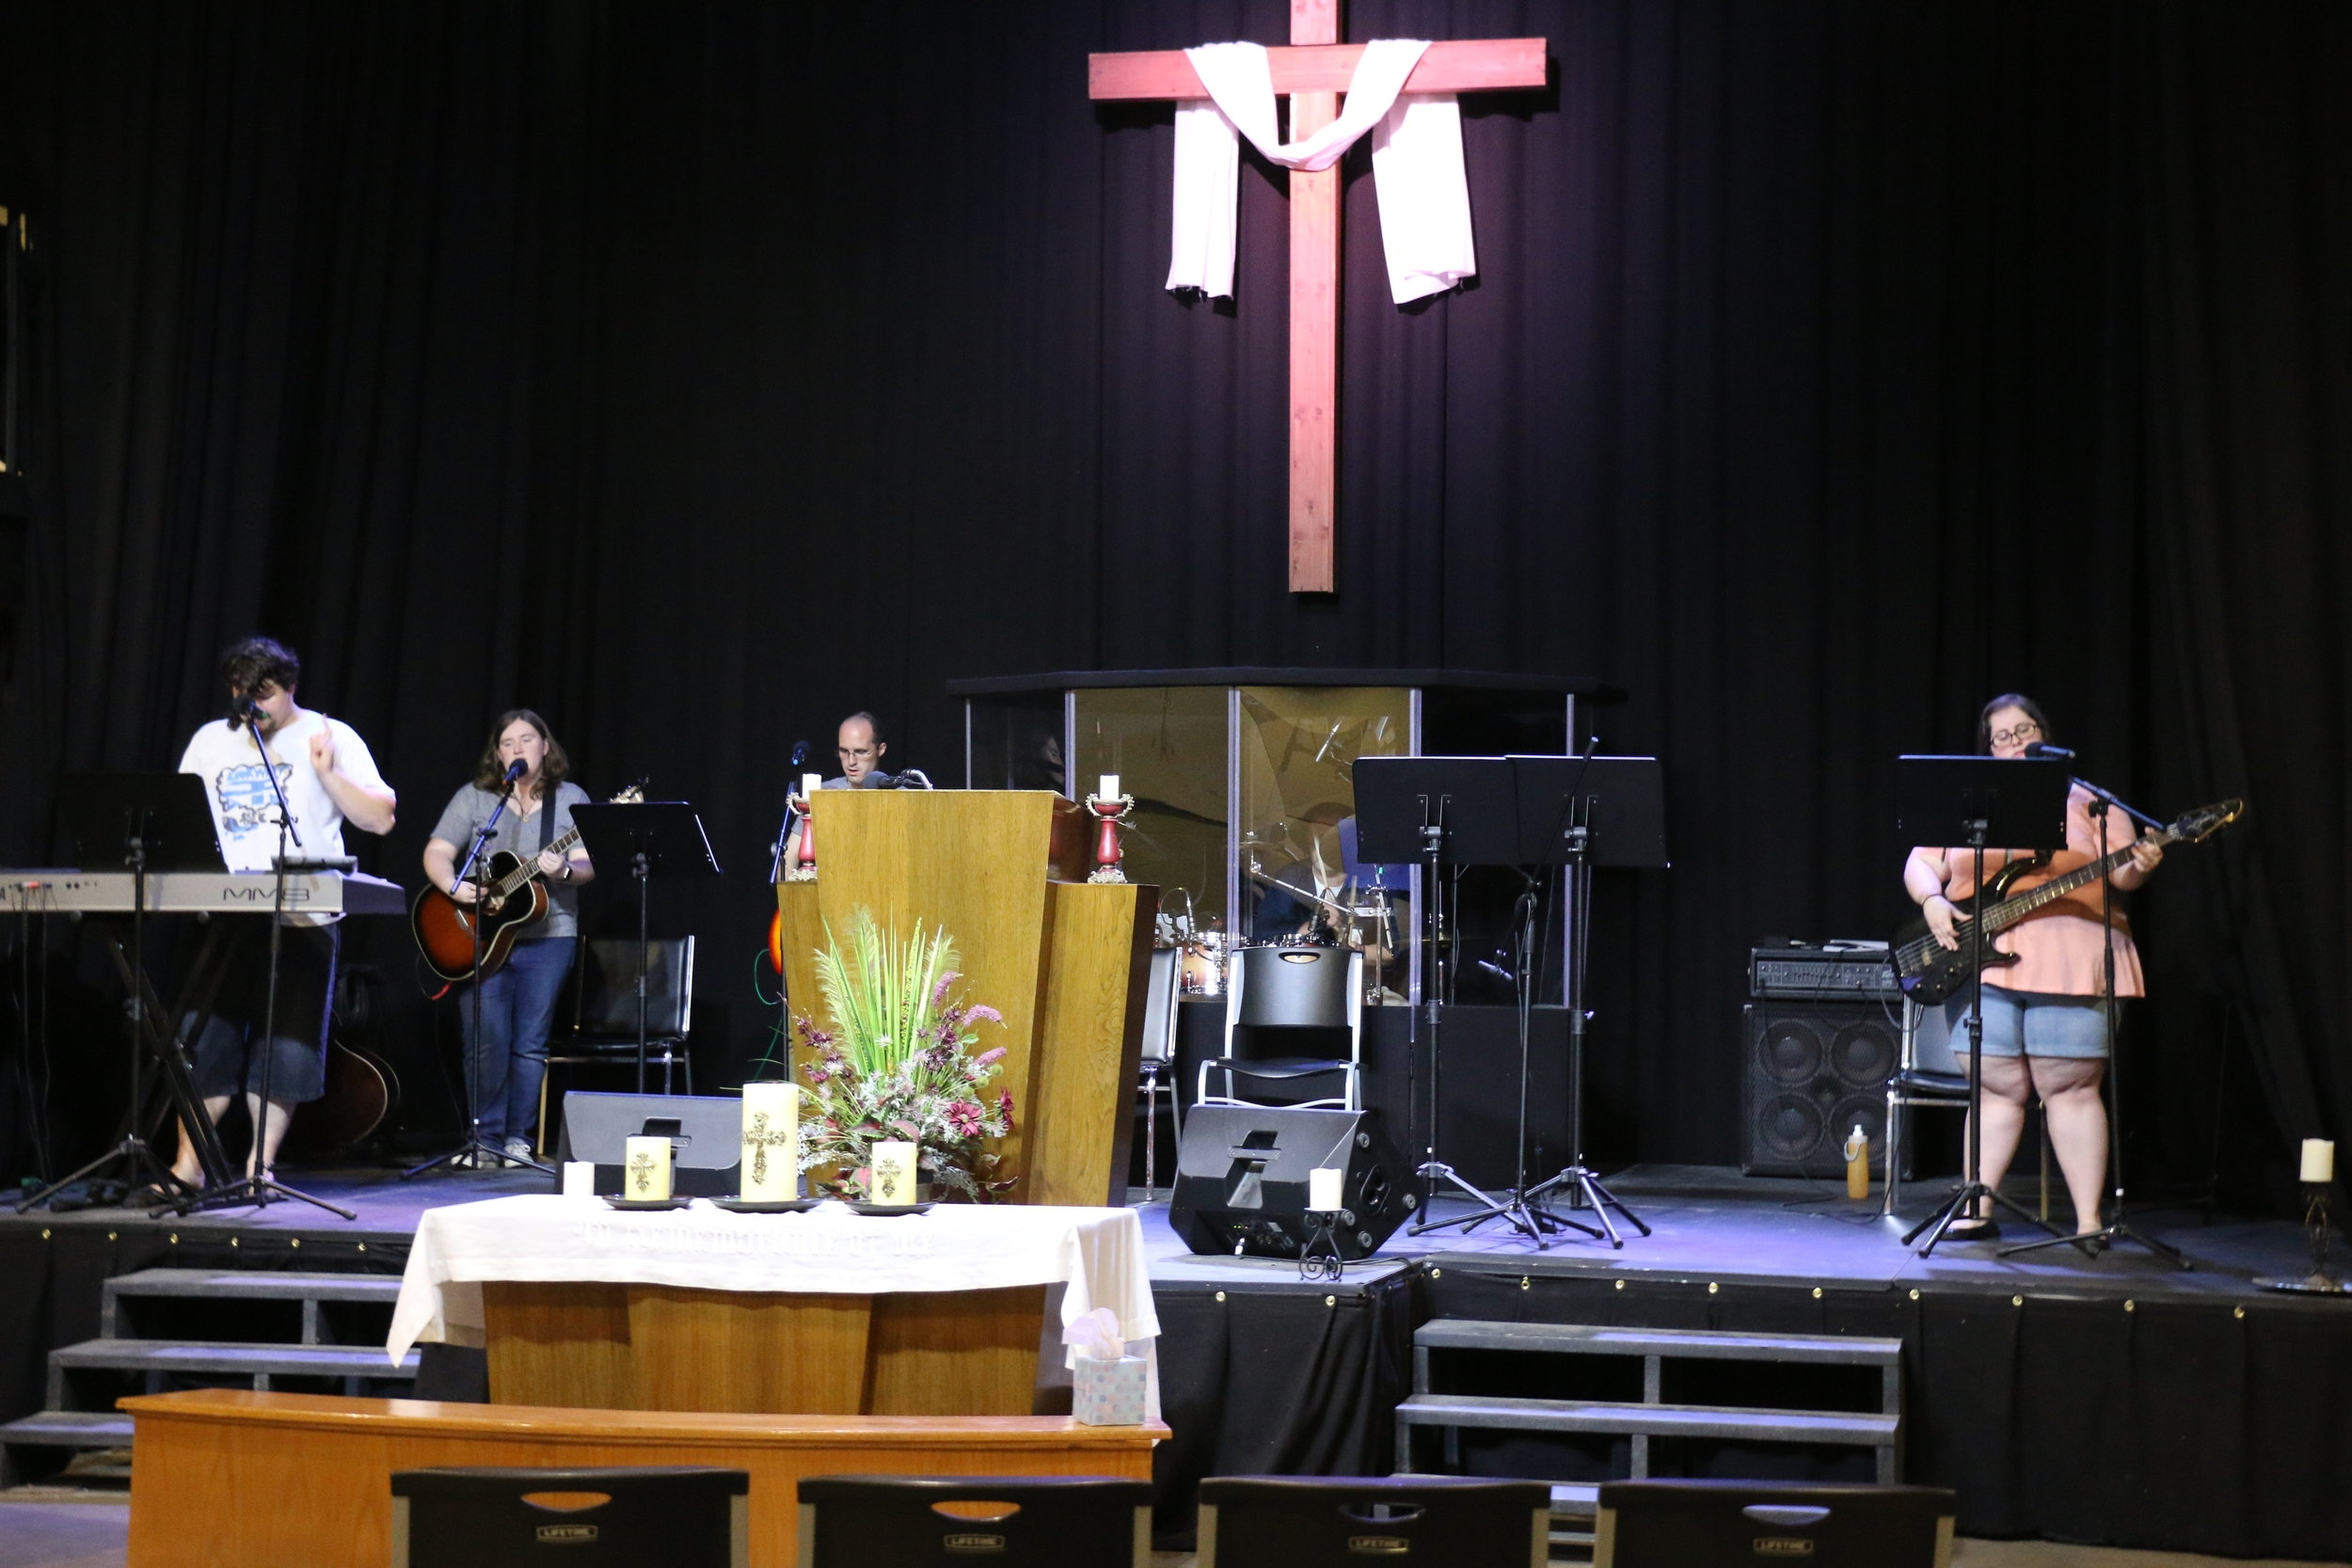 Music - Worship is the expression of the joy found in Jesus. As we gather on Sundays we sing songs of praise, thanksgiving, and adoration to our God